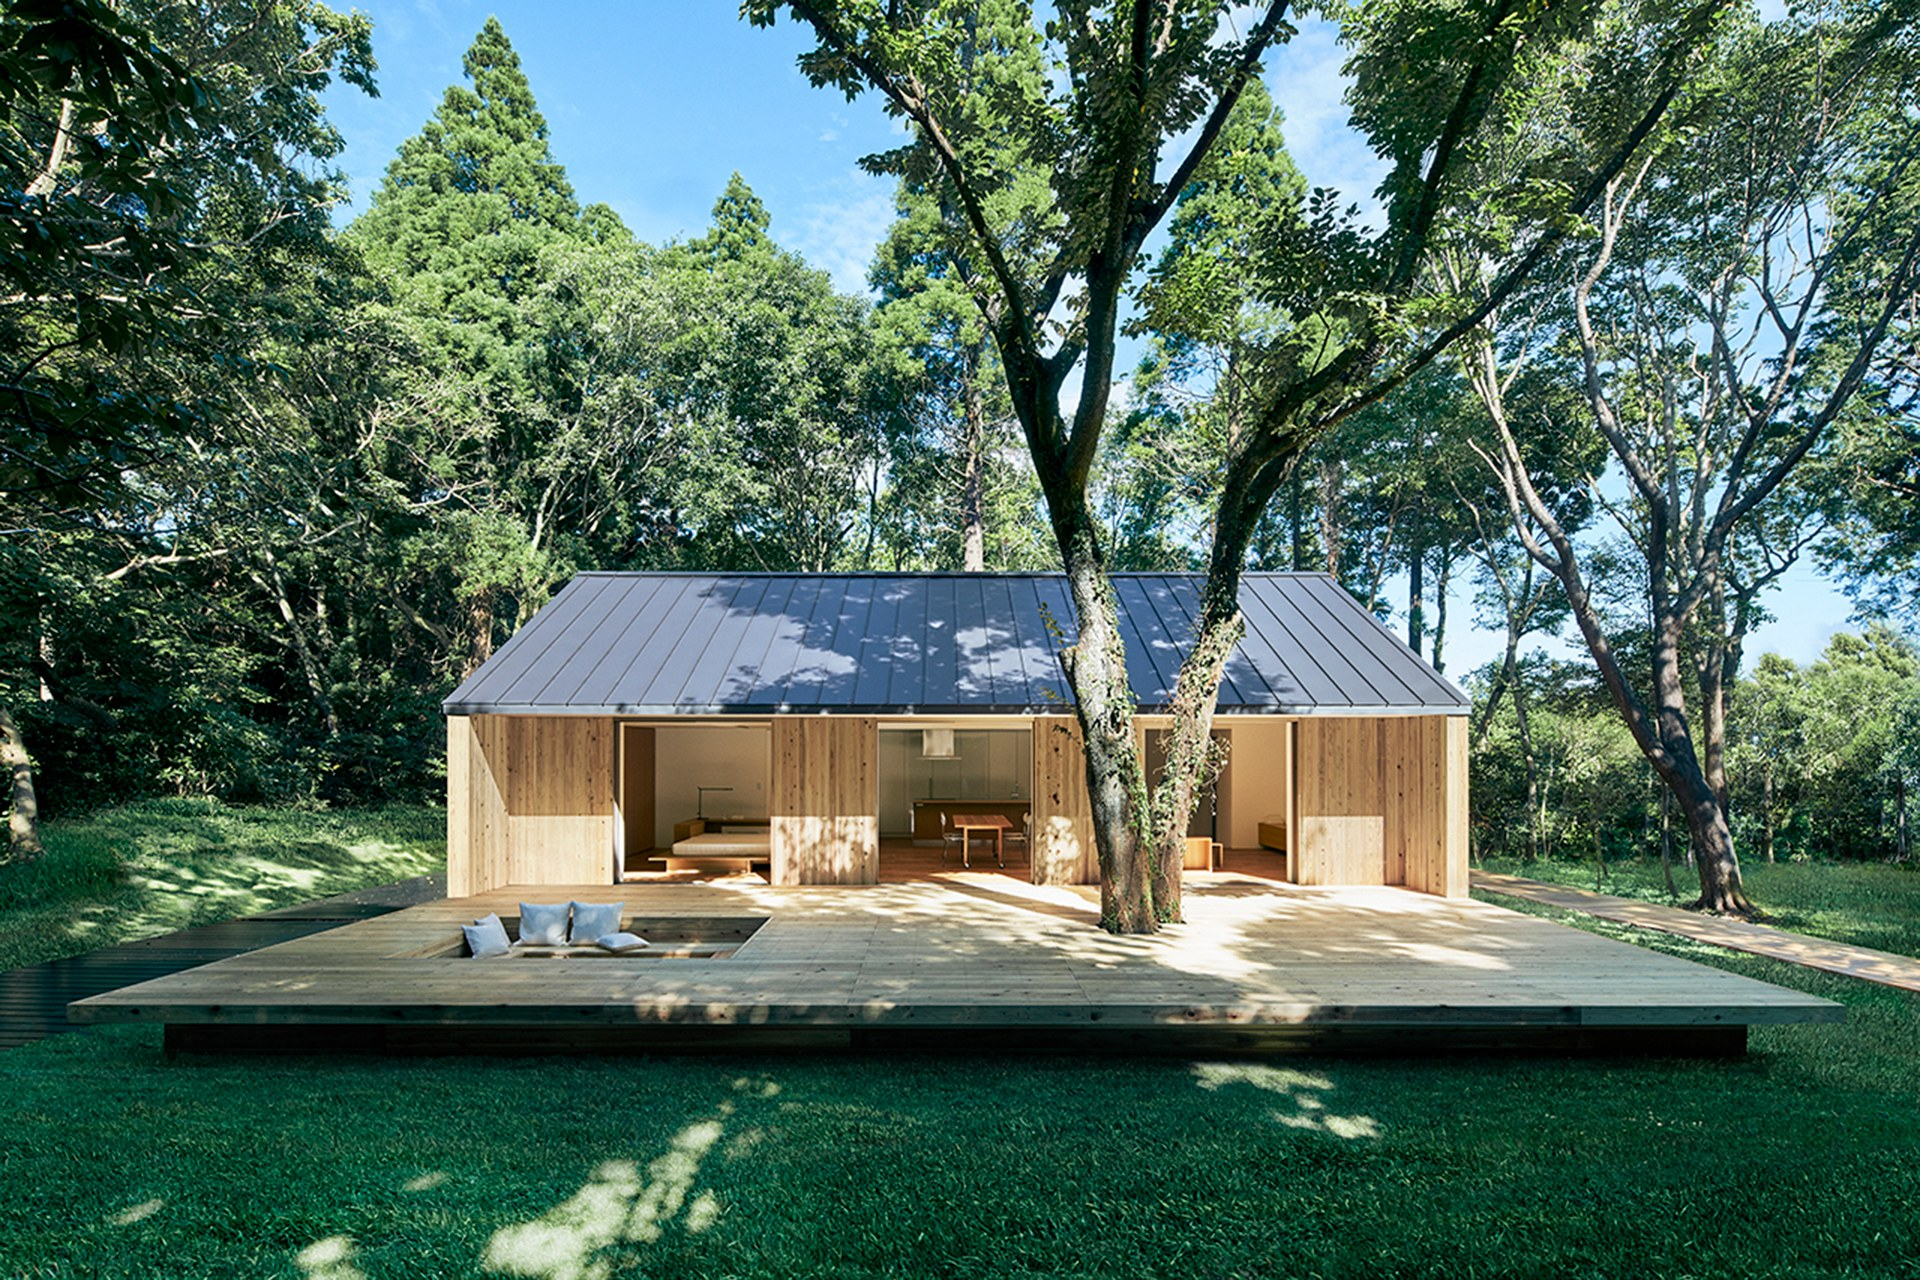 Exterior photo of a short, gabled house designed by Muji